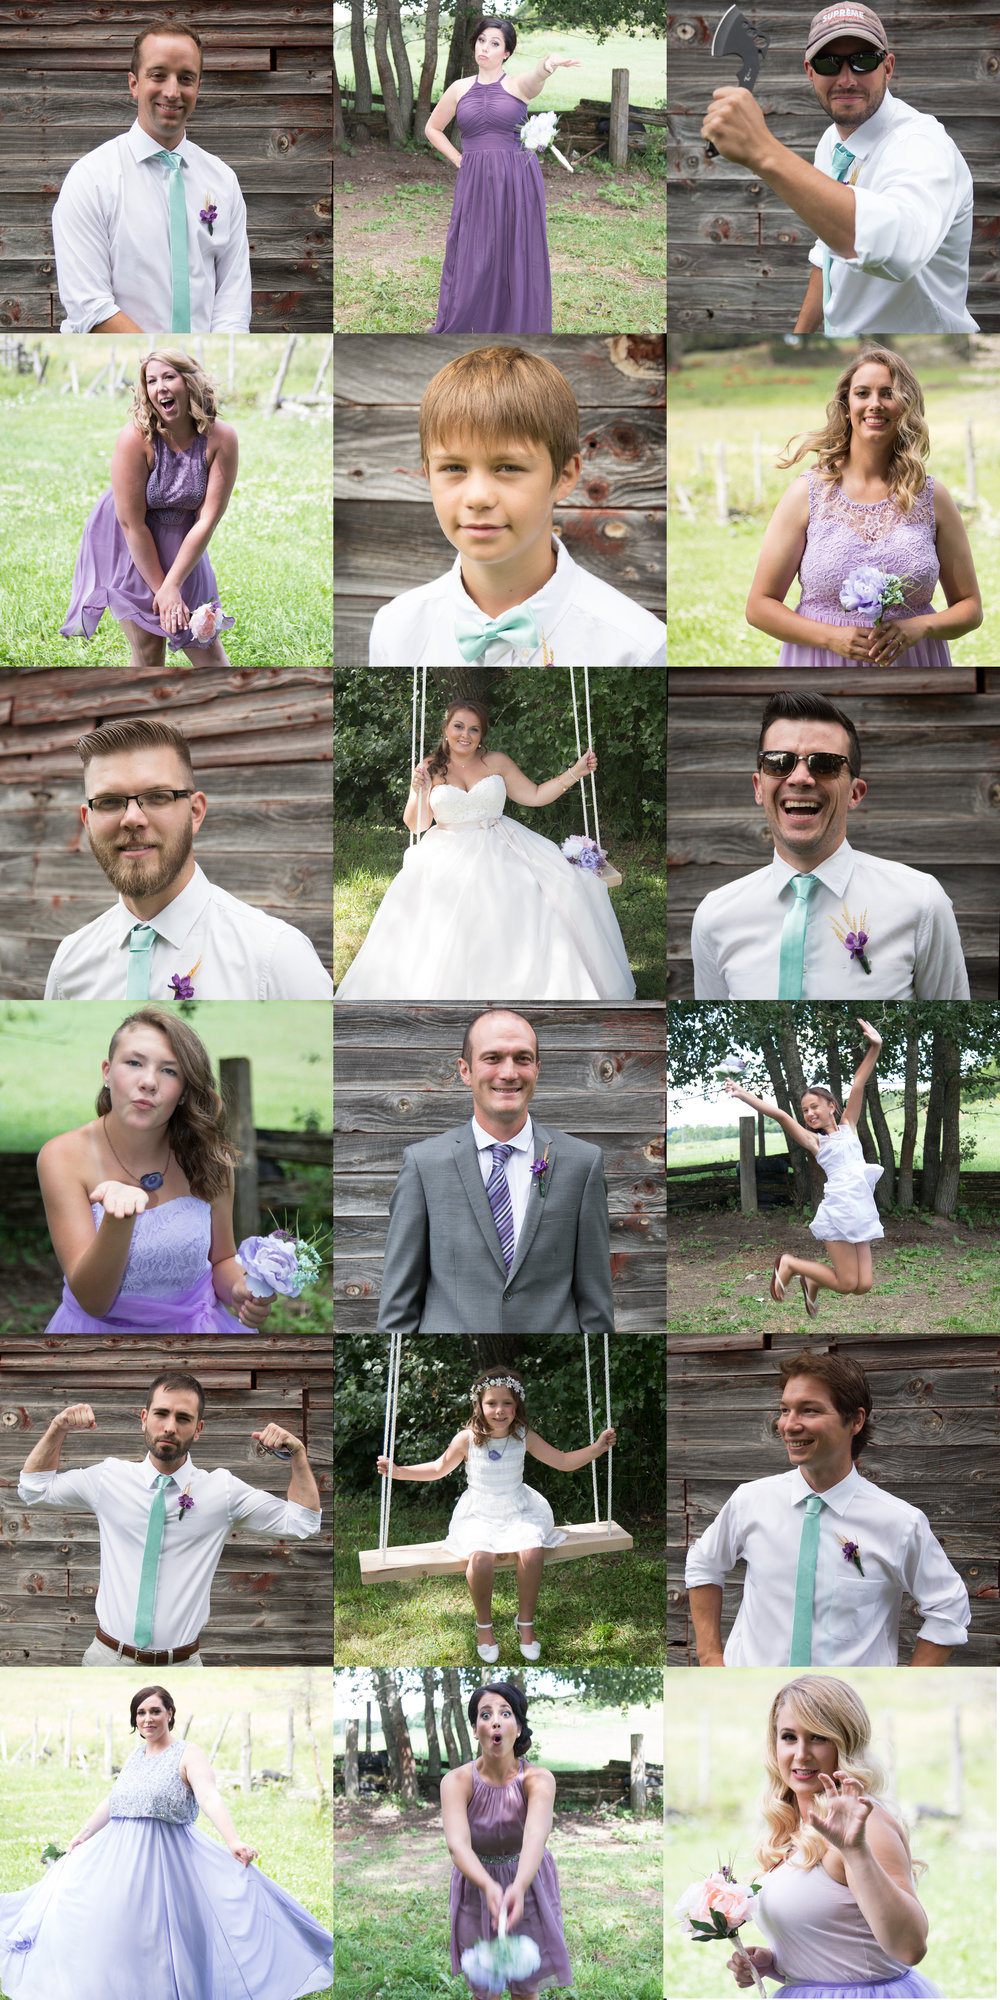 a wedding party collage.jpg